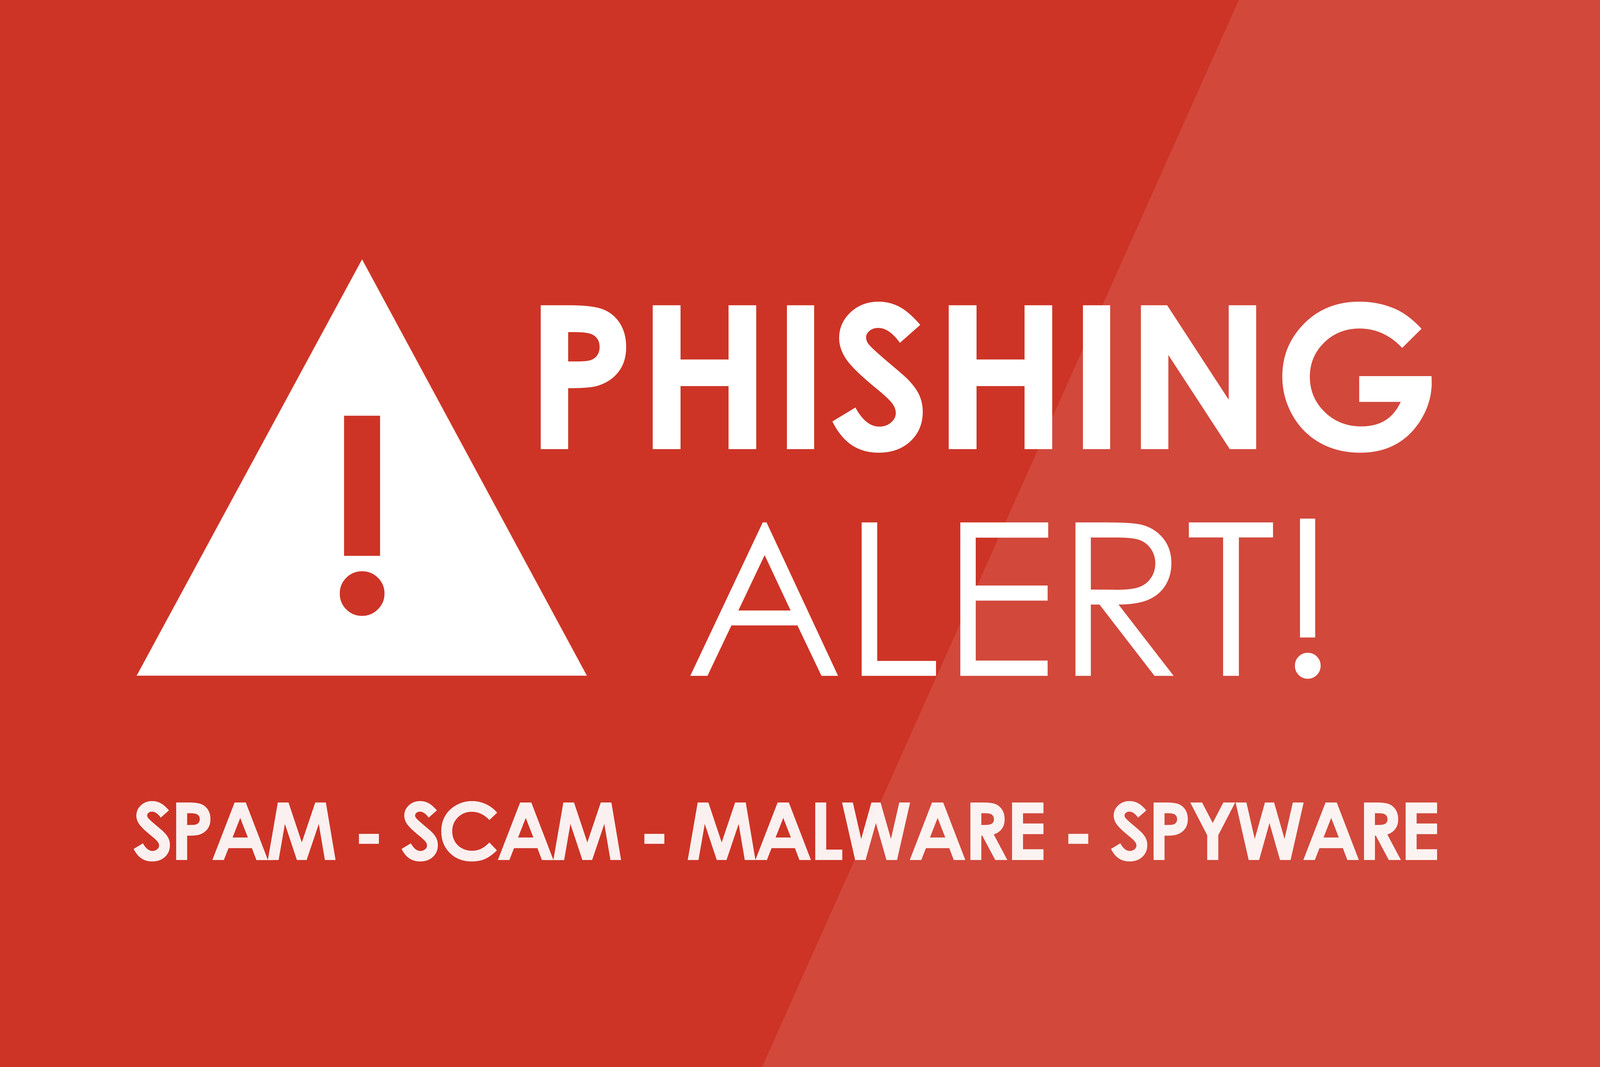 Red Phishing alert sign with white letters and triangle with exclamation mark stating Phishing alert, spam-scam-malware-spyware